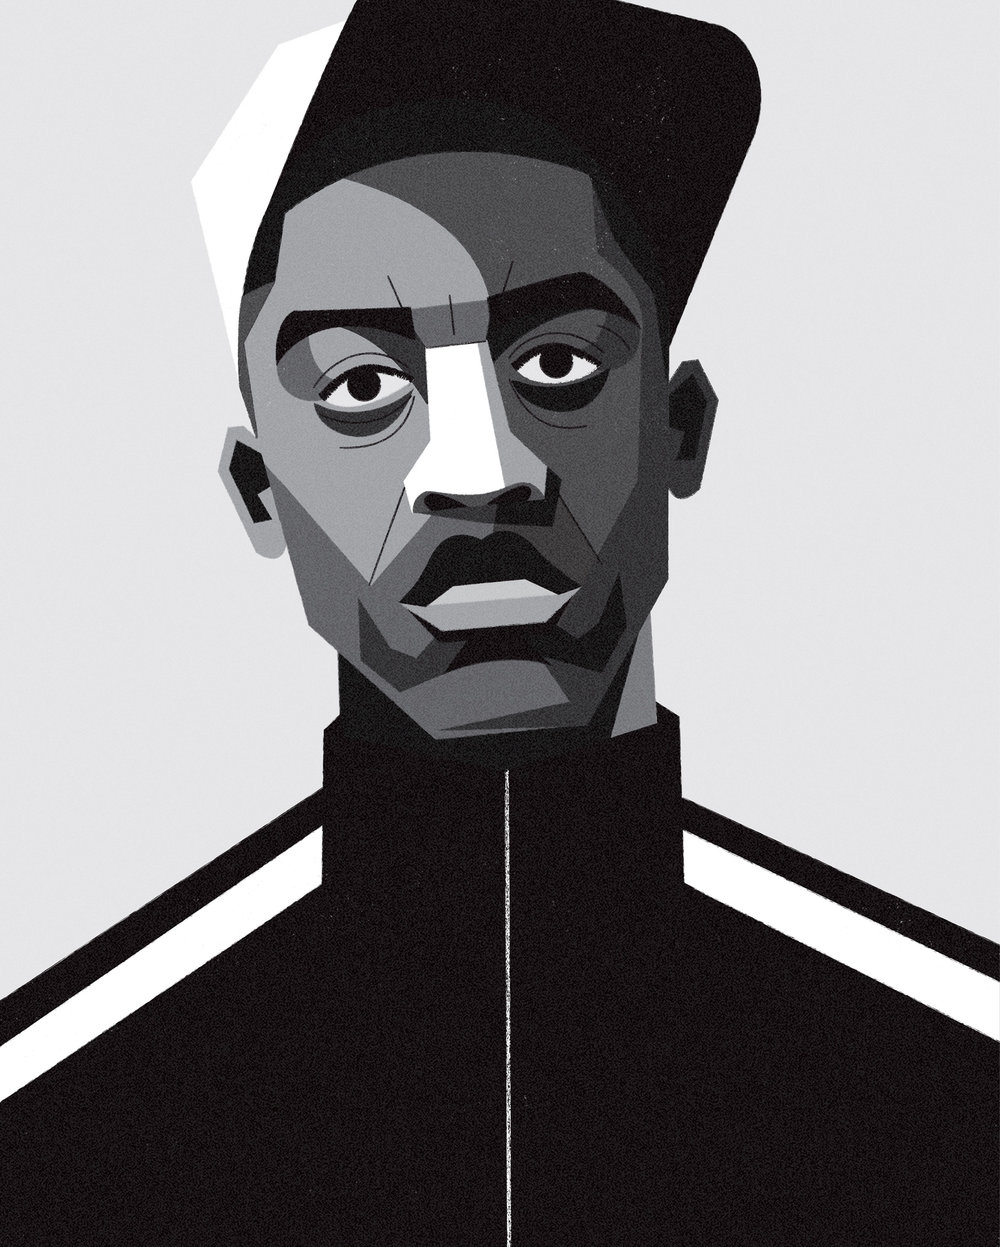 dale edwin murray freelance illustrator wiley grime uk portrait illustration